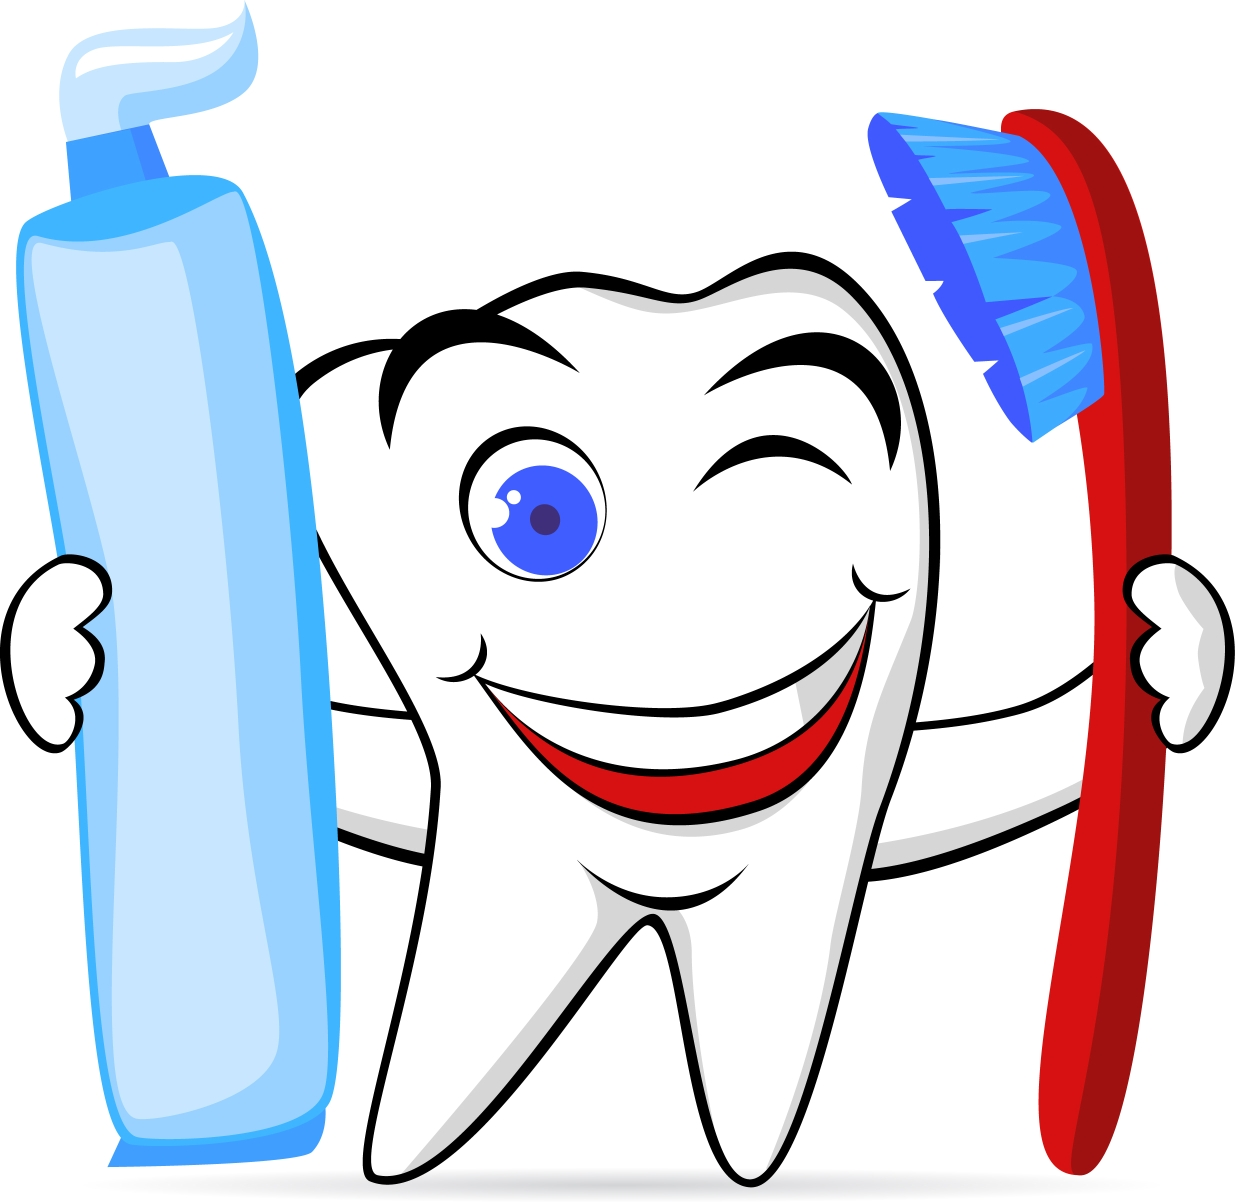 Free Animated Teeth Cliparts, Download Free Clip Art, Free.